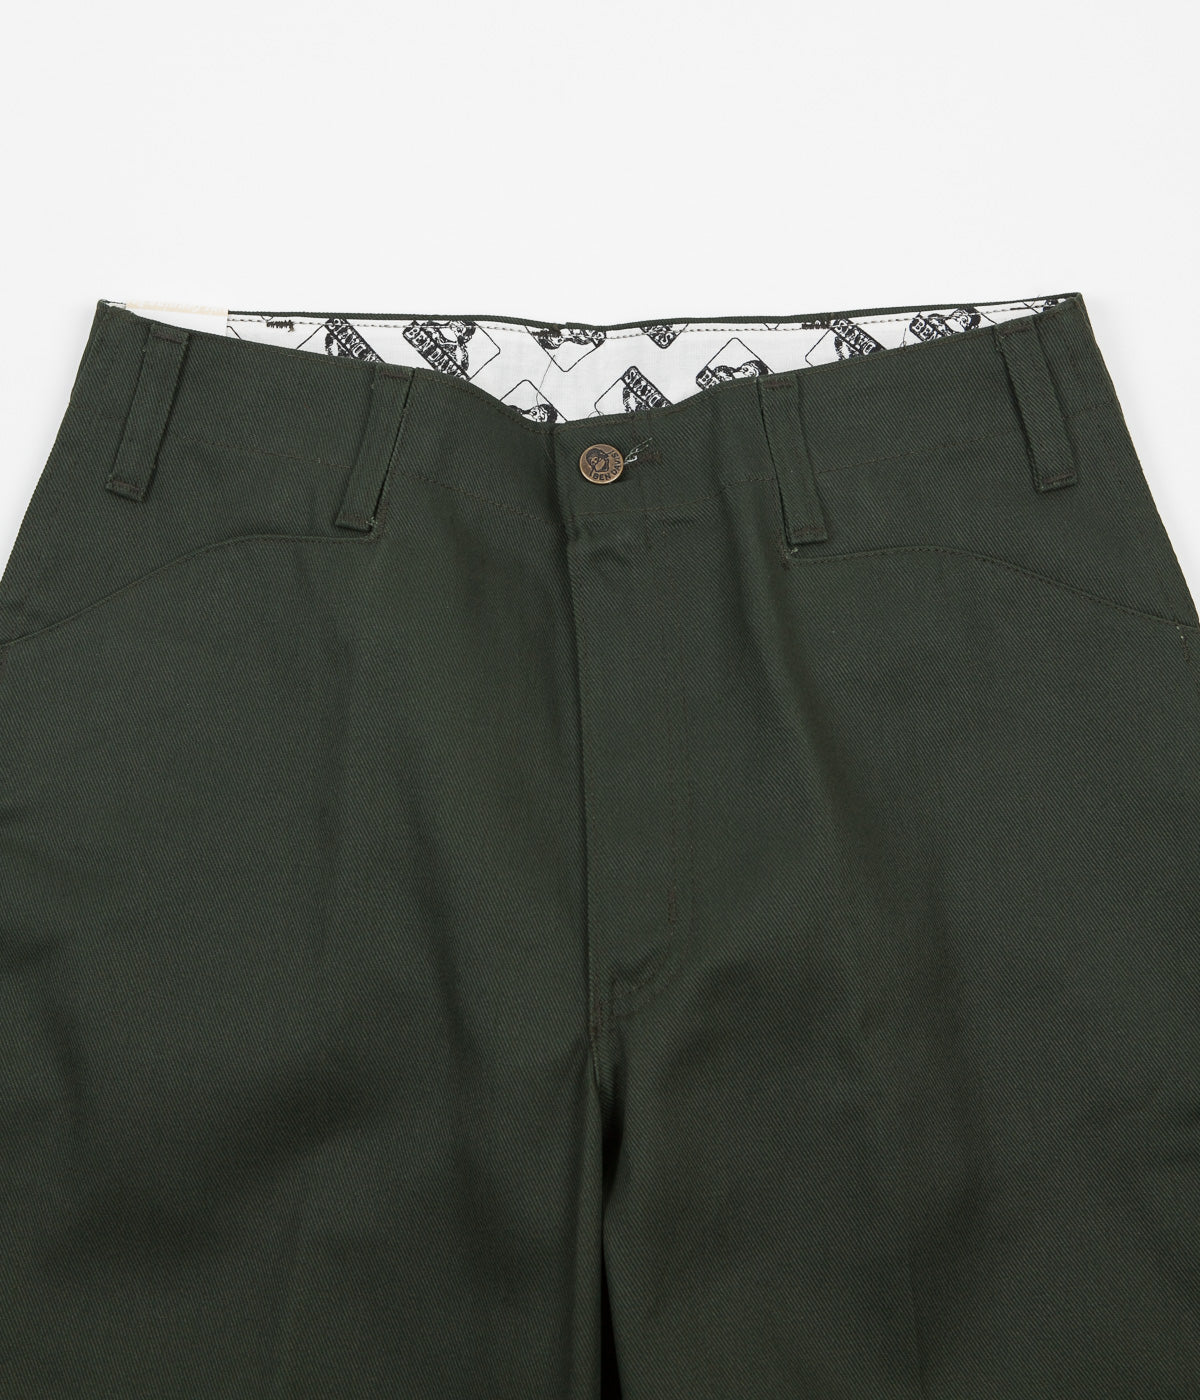 Ben Davis Original Ben's Work Trousers - Olive